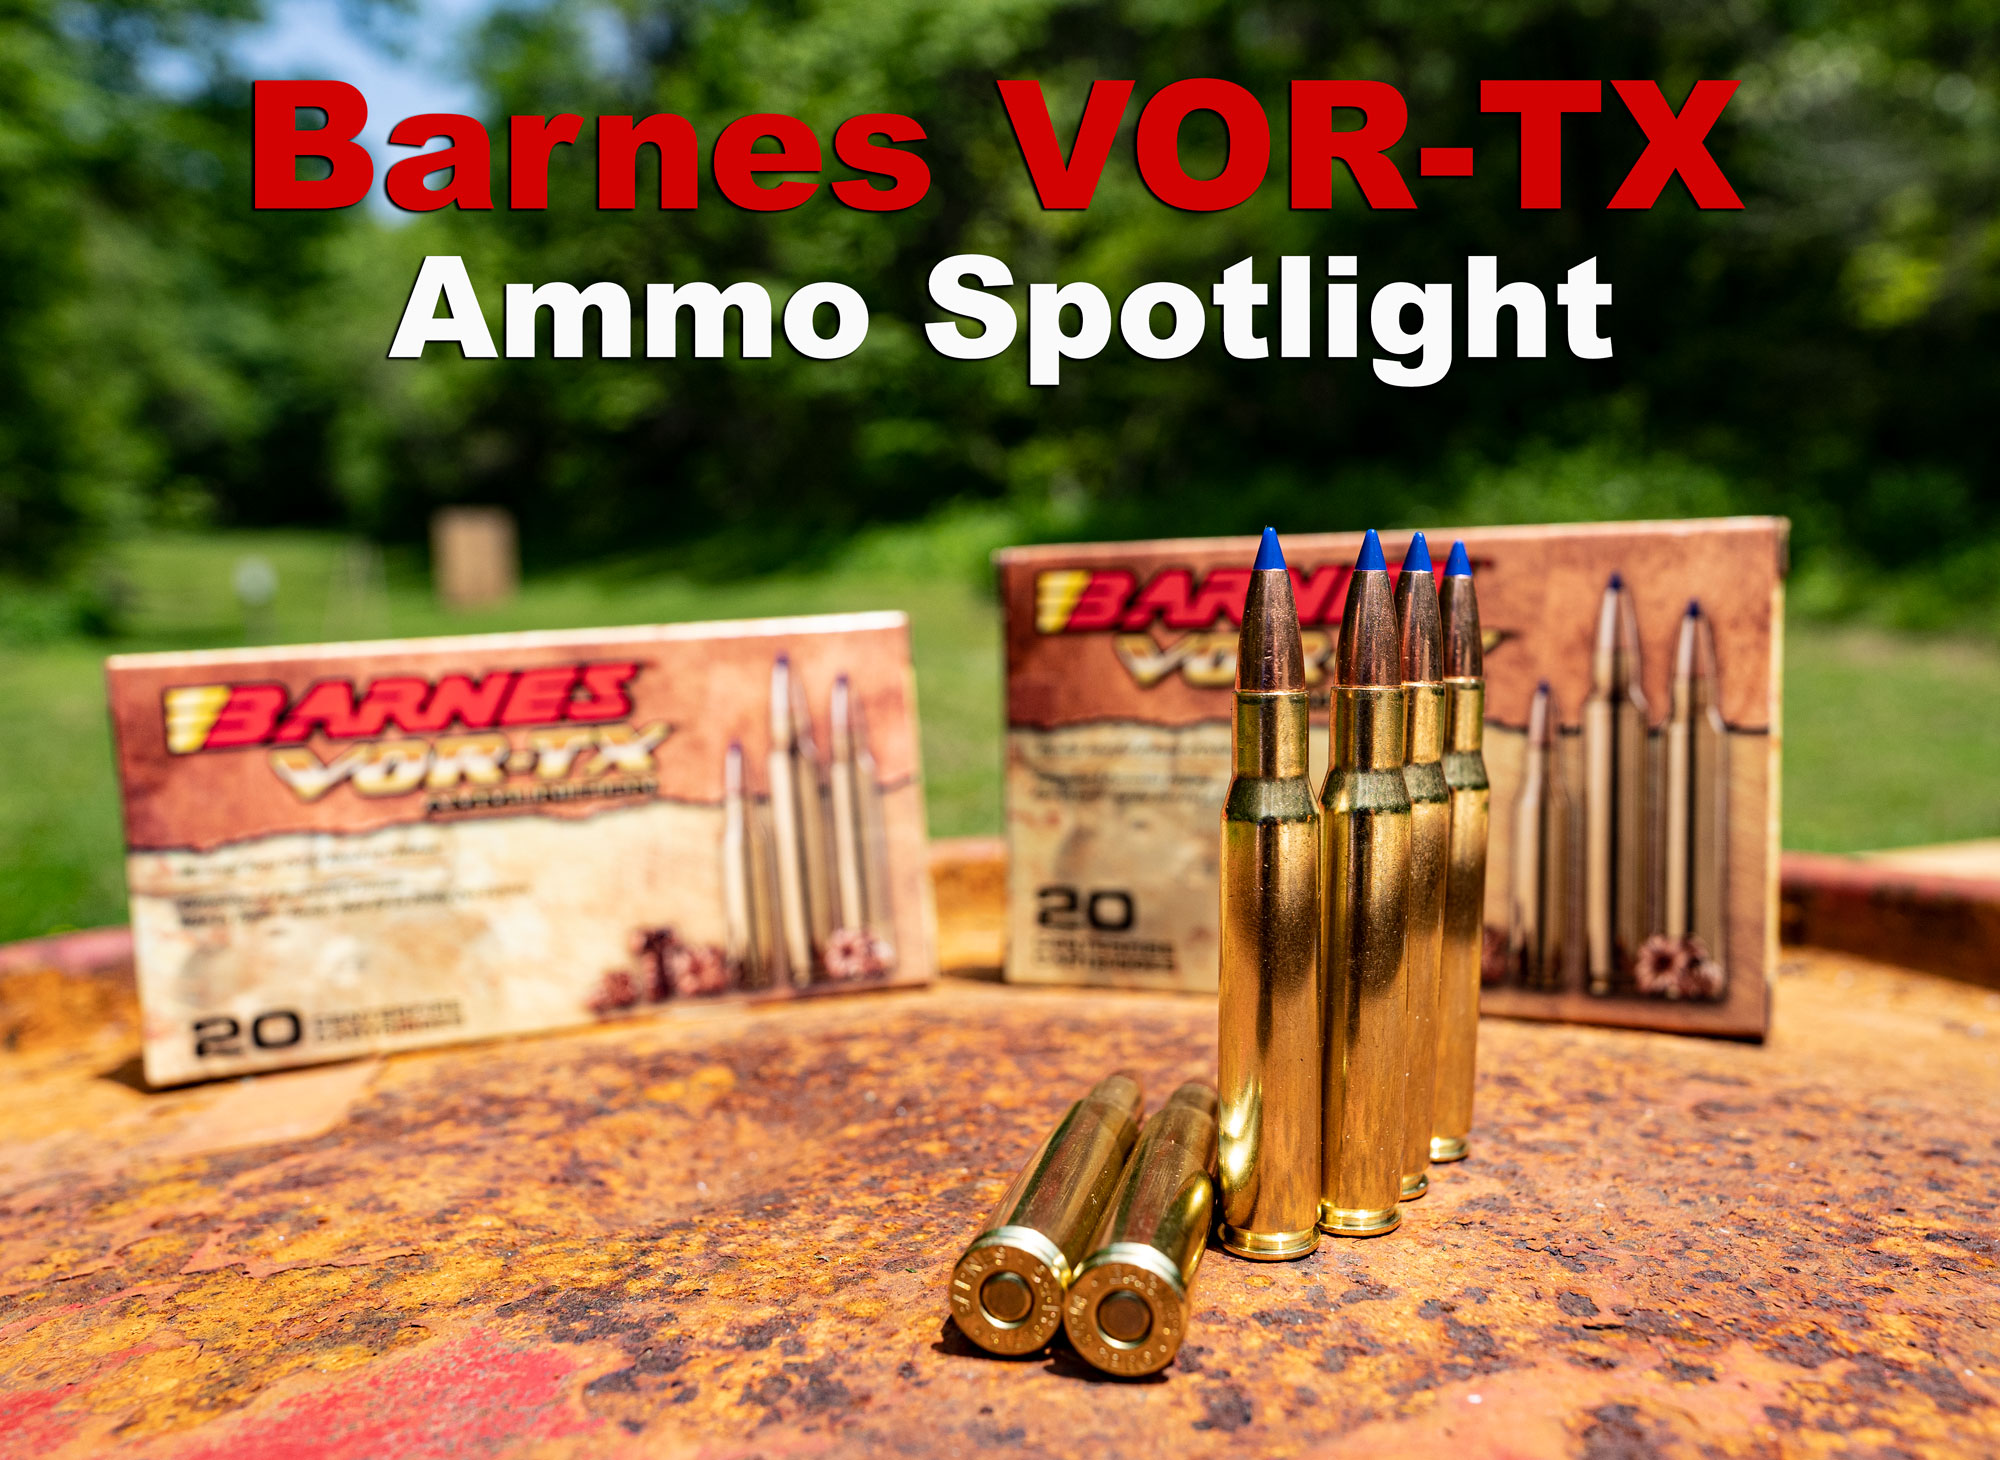 Barnes VOR-TX ammo at the range